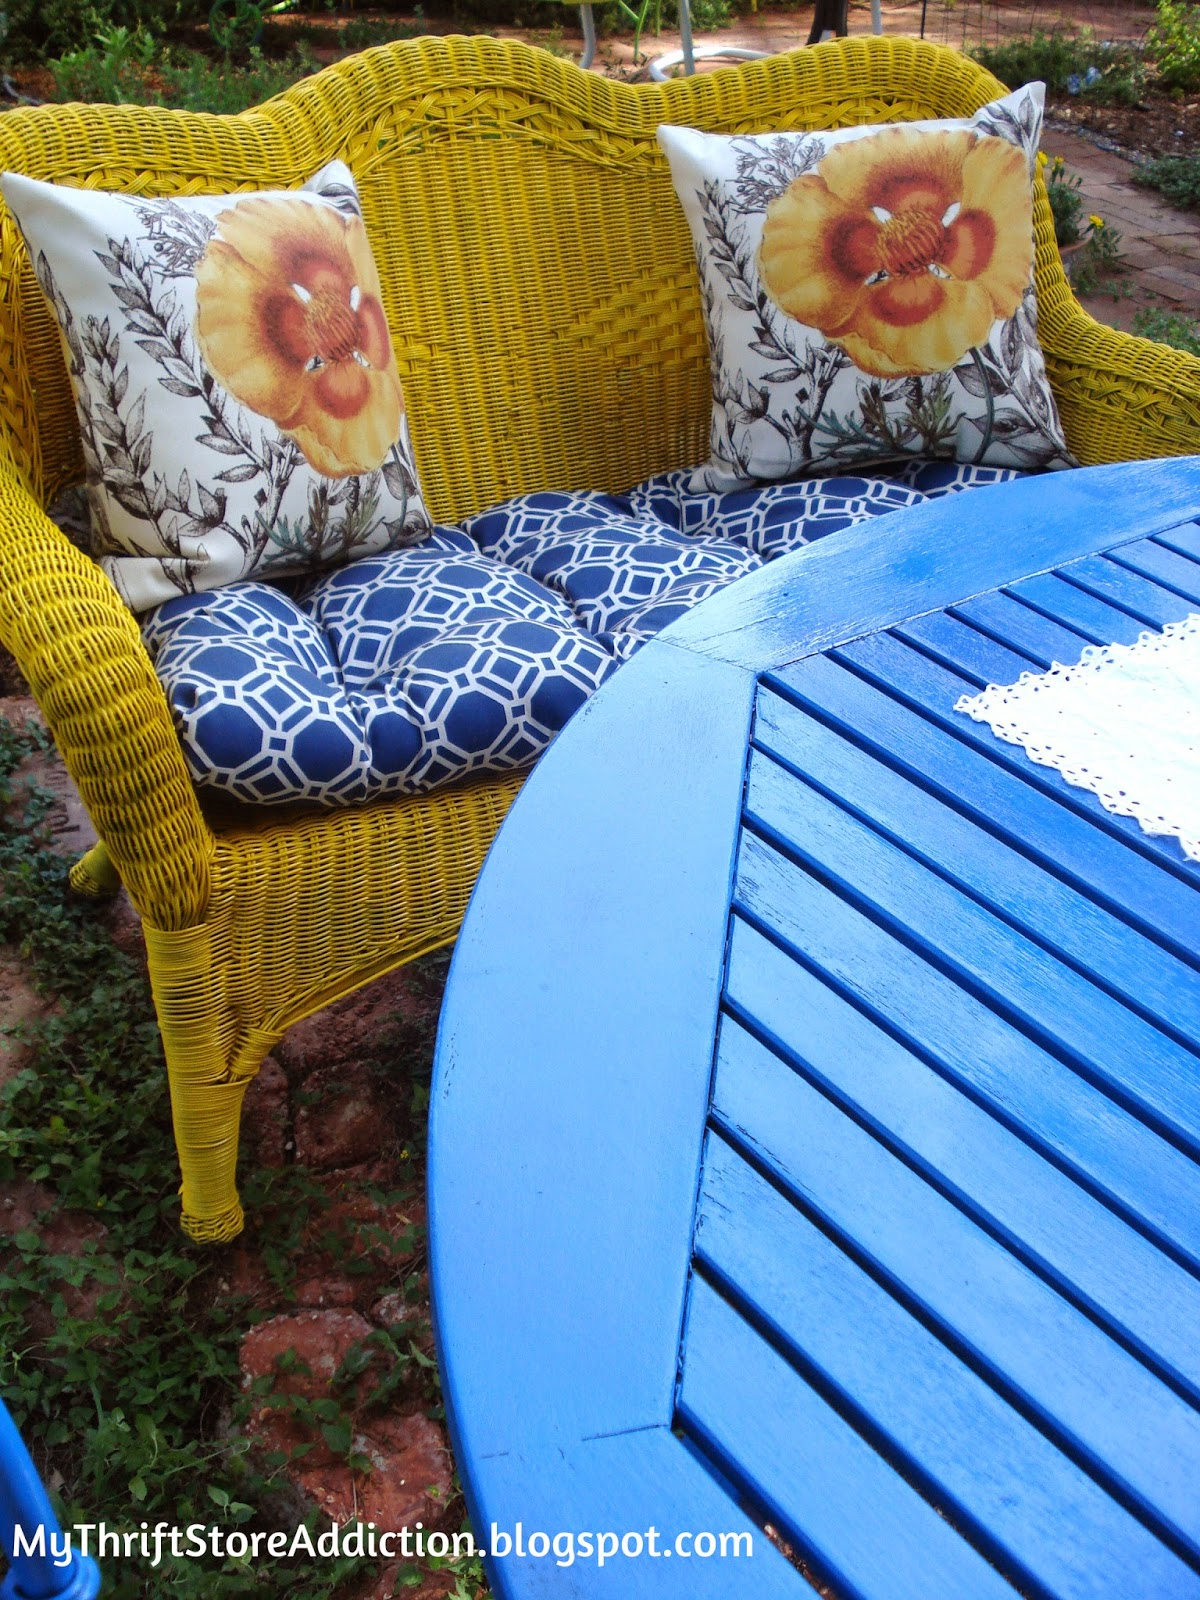 Good Morning Sunshine: Project Pretty Patio mythriftstoreaddiction.blogspot.com Mismatched yard sale furniture refreshed with spray paint to create a pretty patio